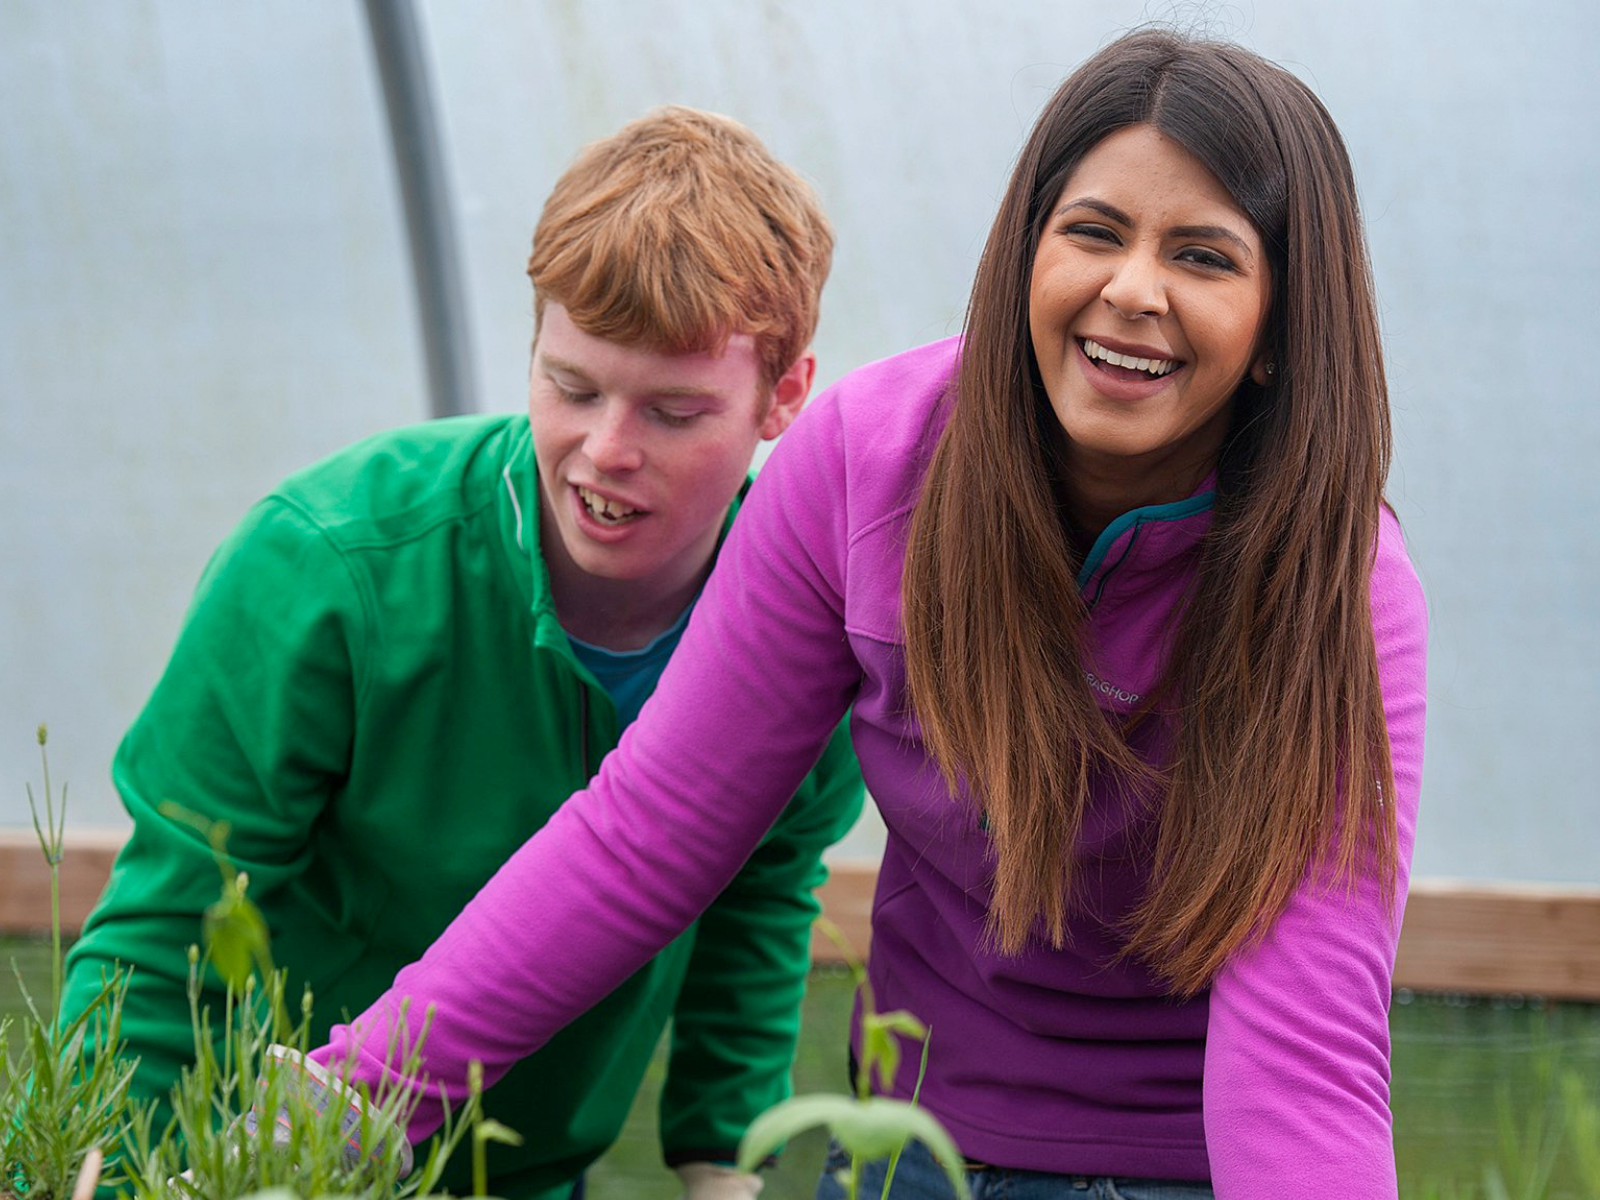 Male and female DofE participant in greenhouse gardening